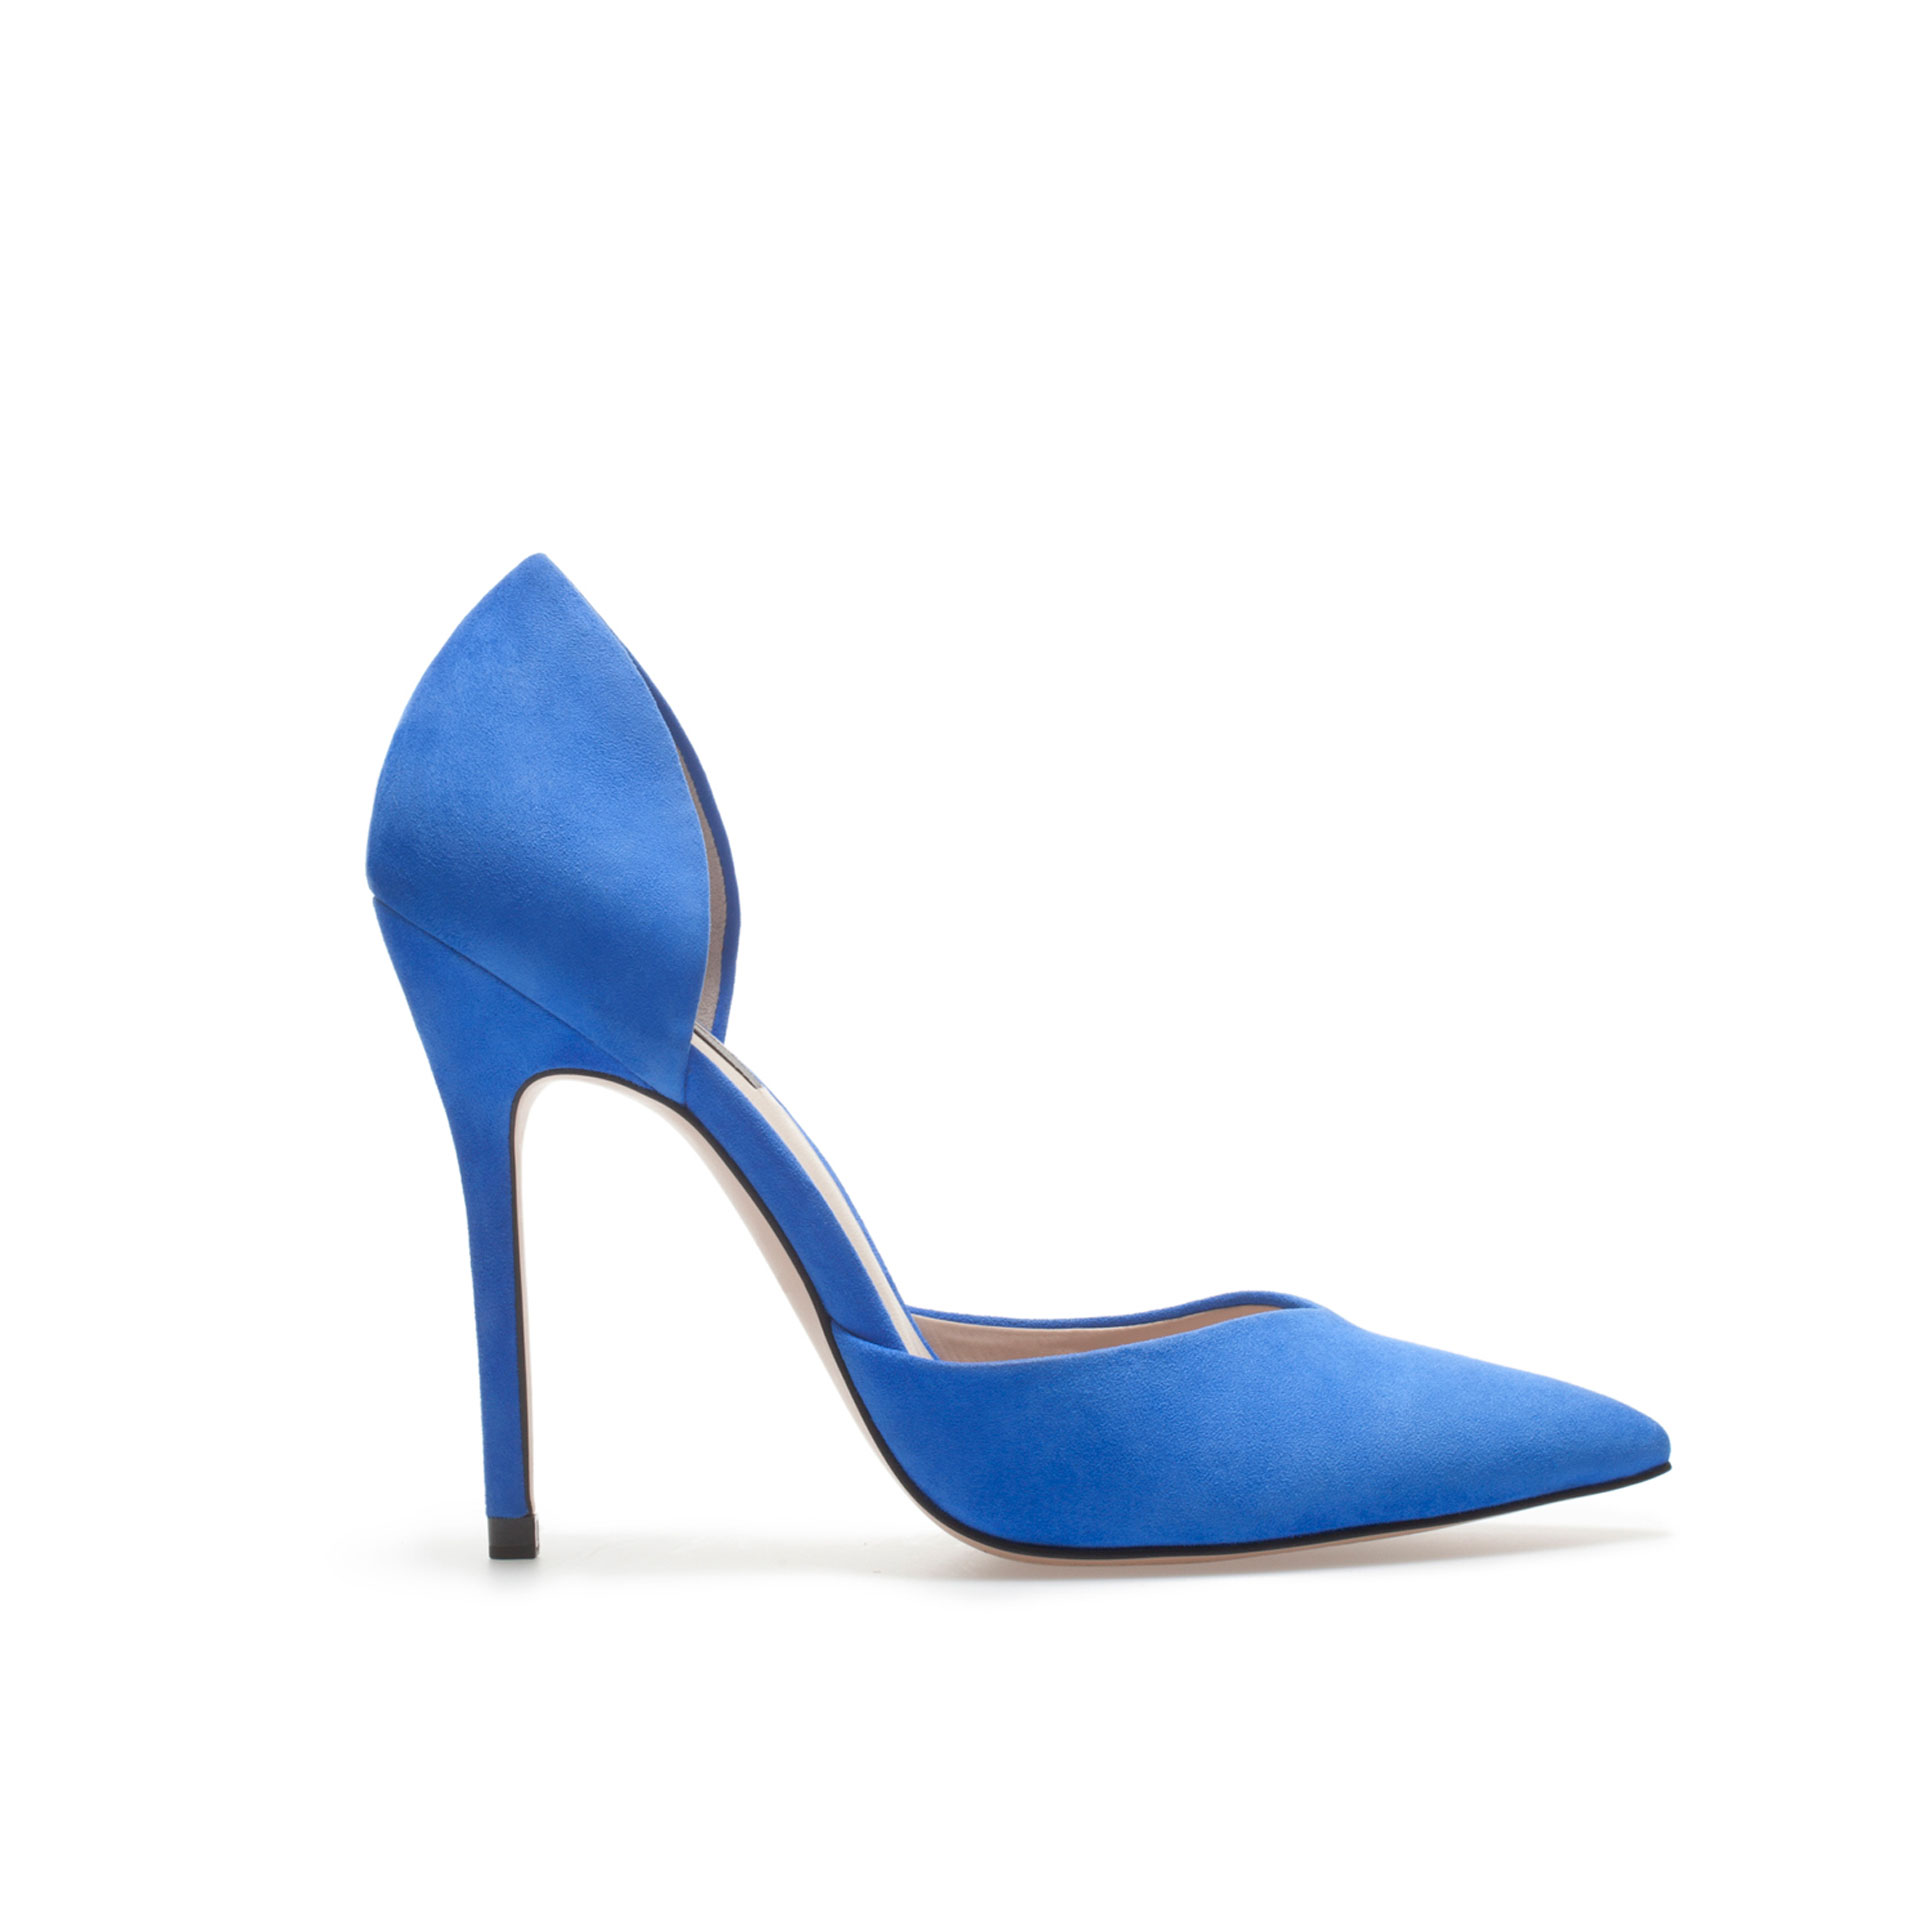 Shoeniverse: ZARA Blue High Heel D'orsay Shoe